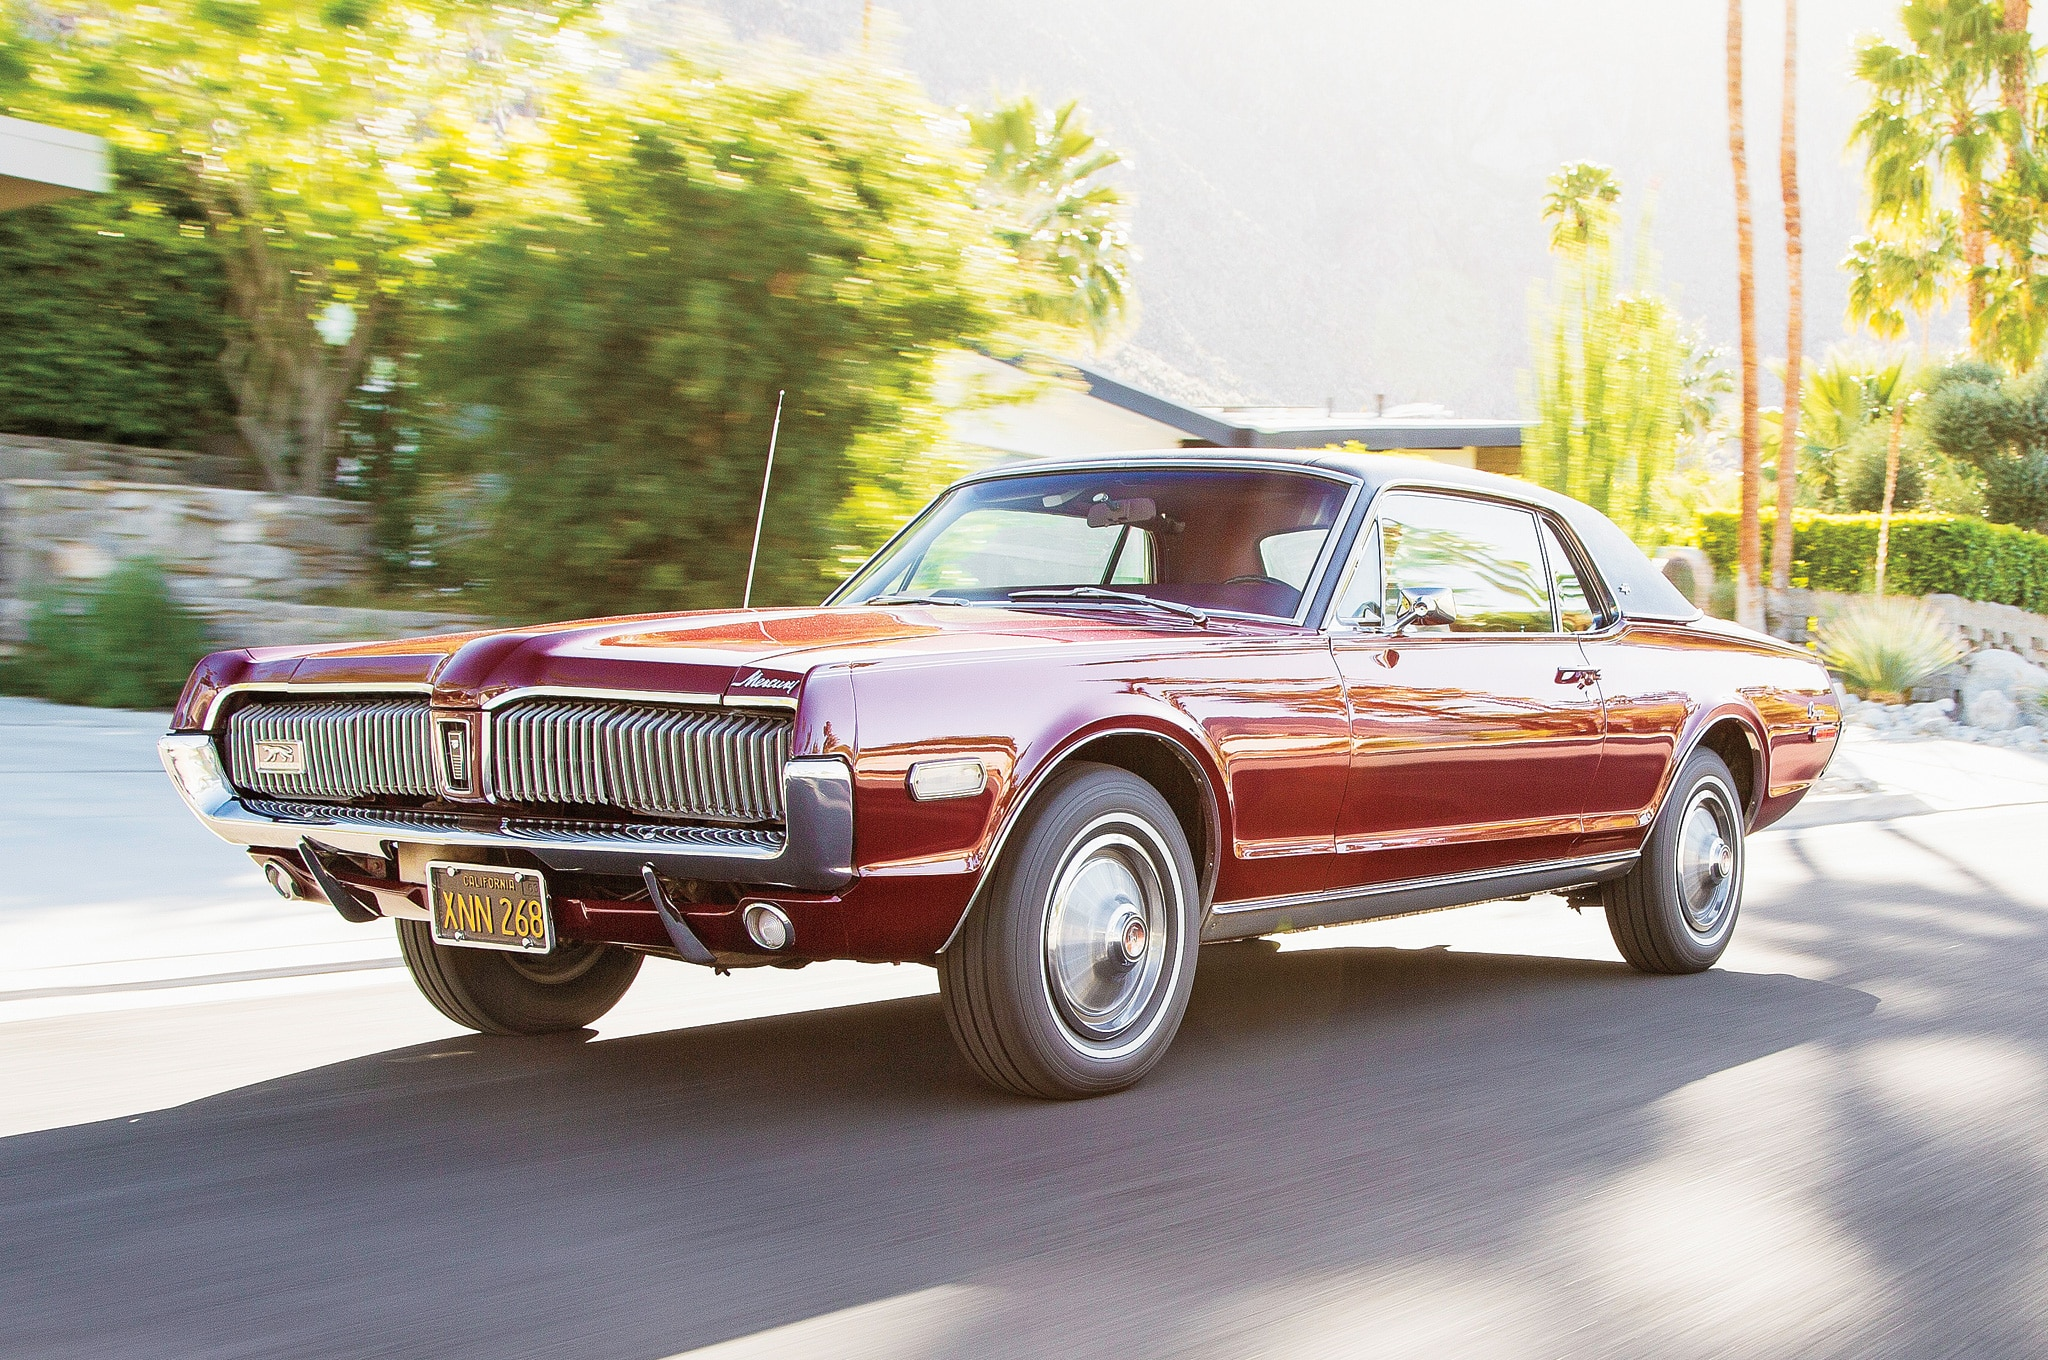 Collectible Classic: 1967-1968 Mercury Cougar XR-7